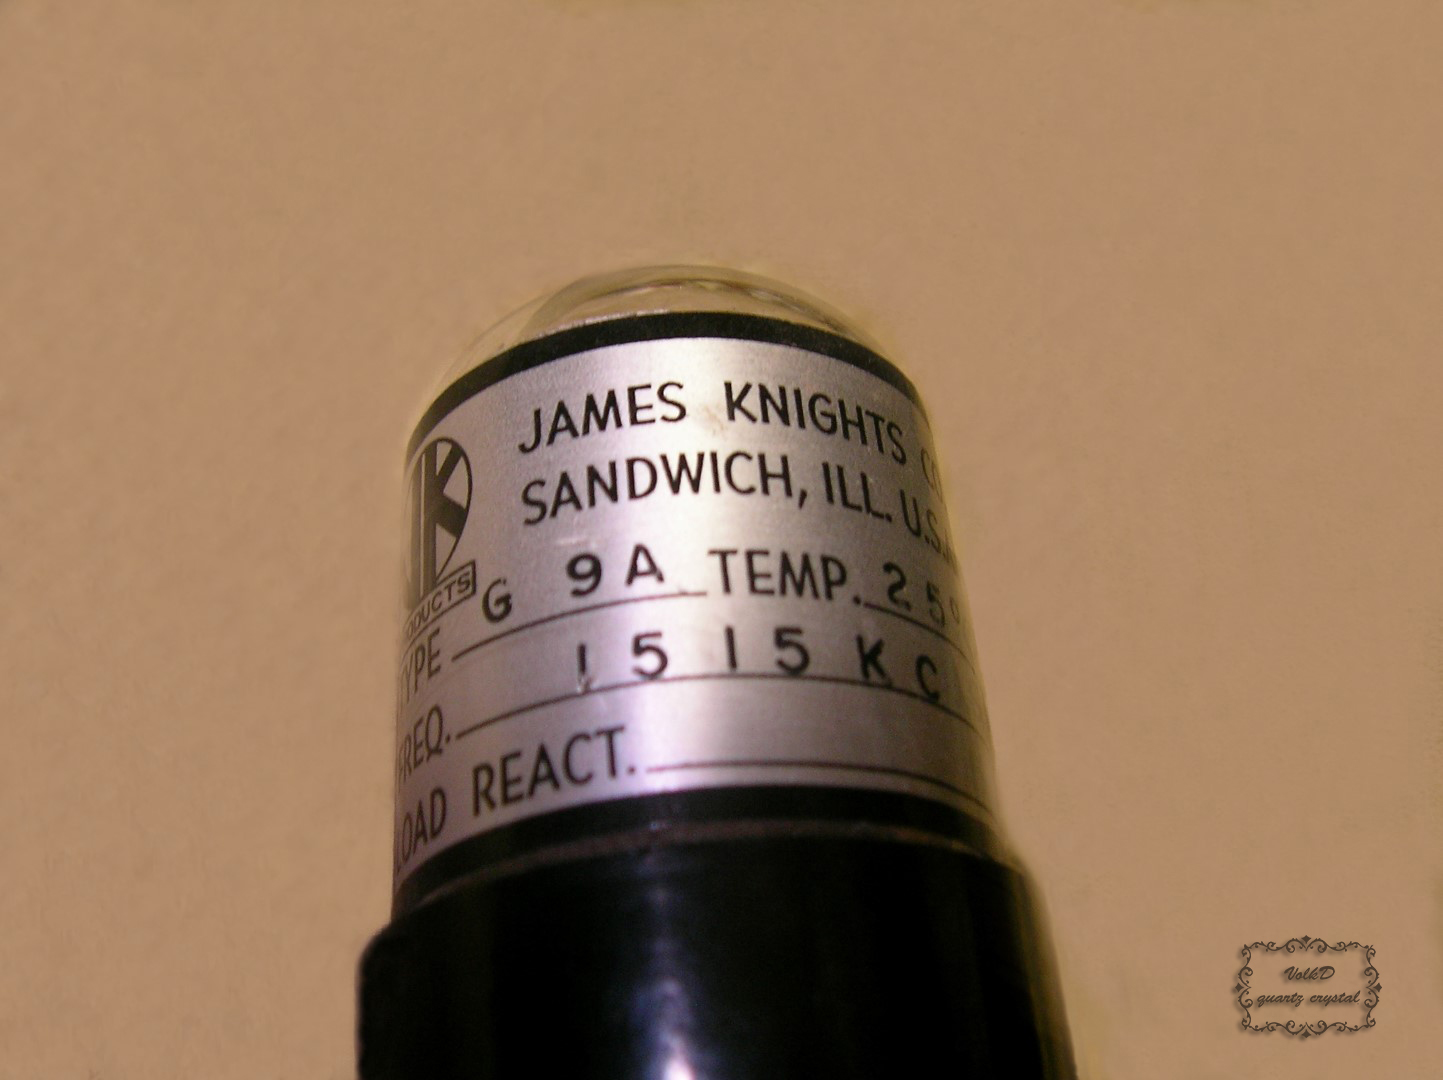 JamesKnights_1515.jpg